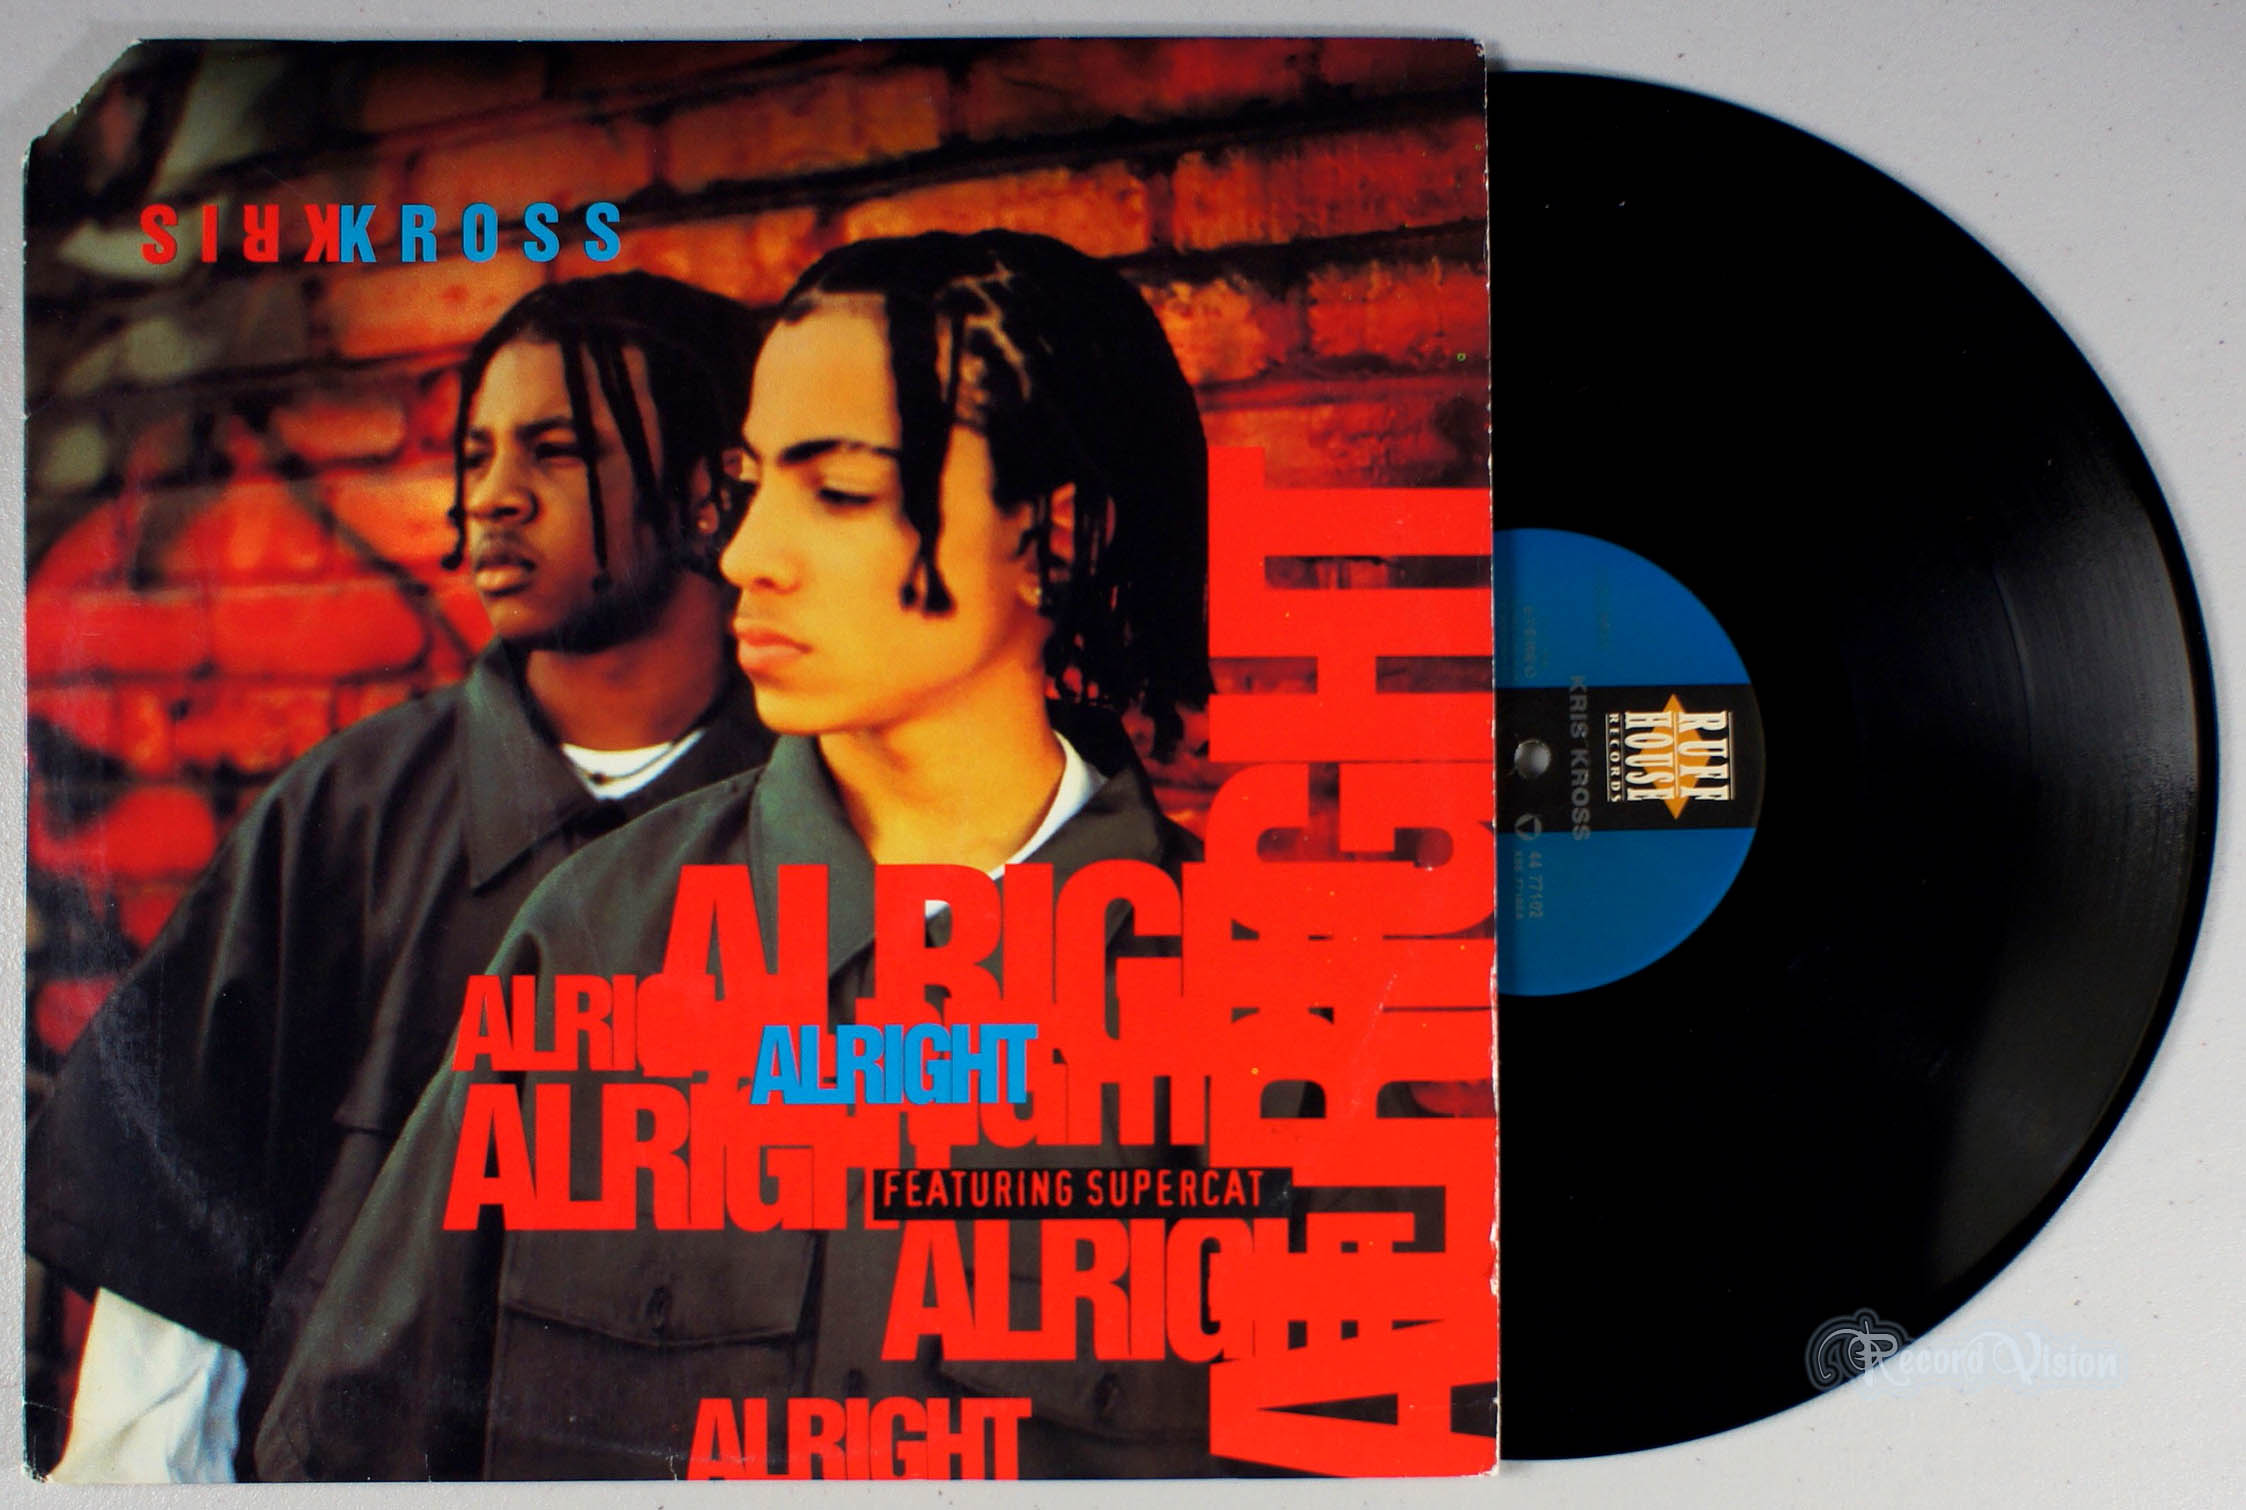 KRIS KROSS - Alright - 12 inch x 1